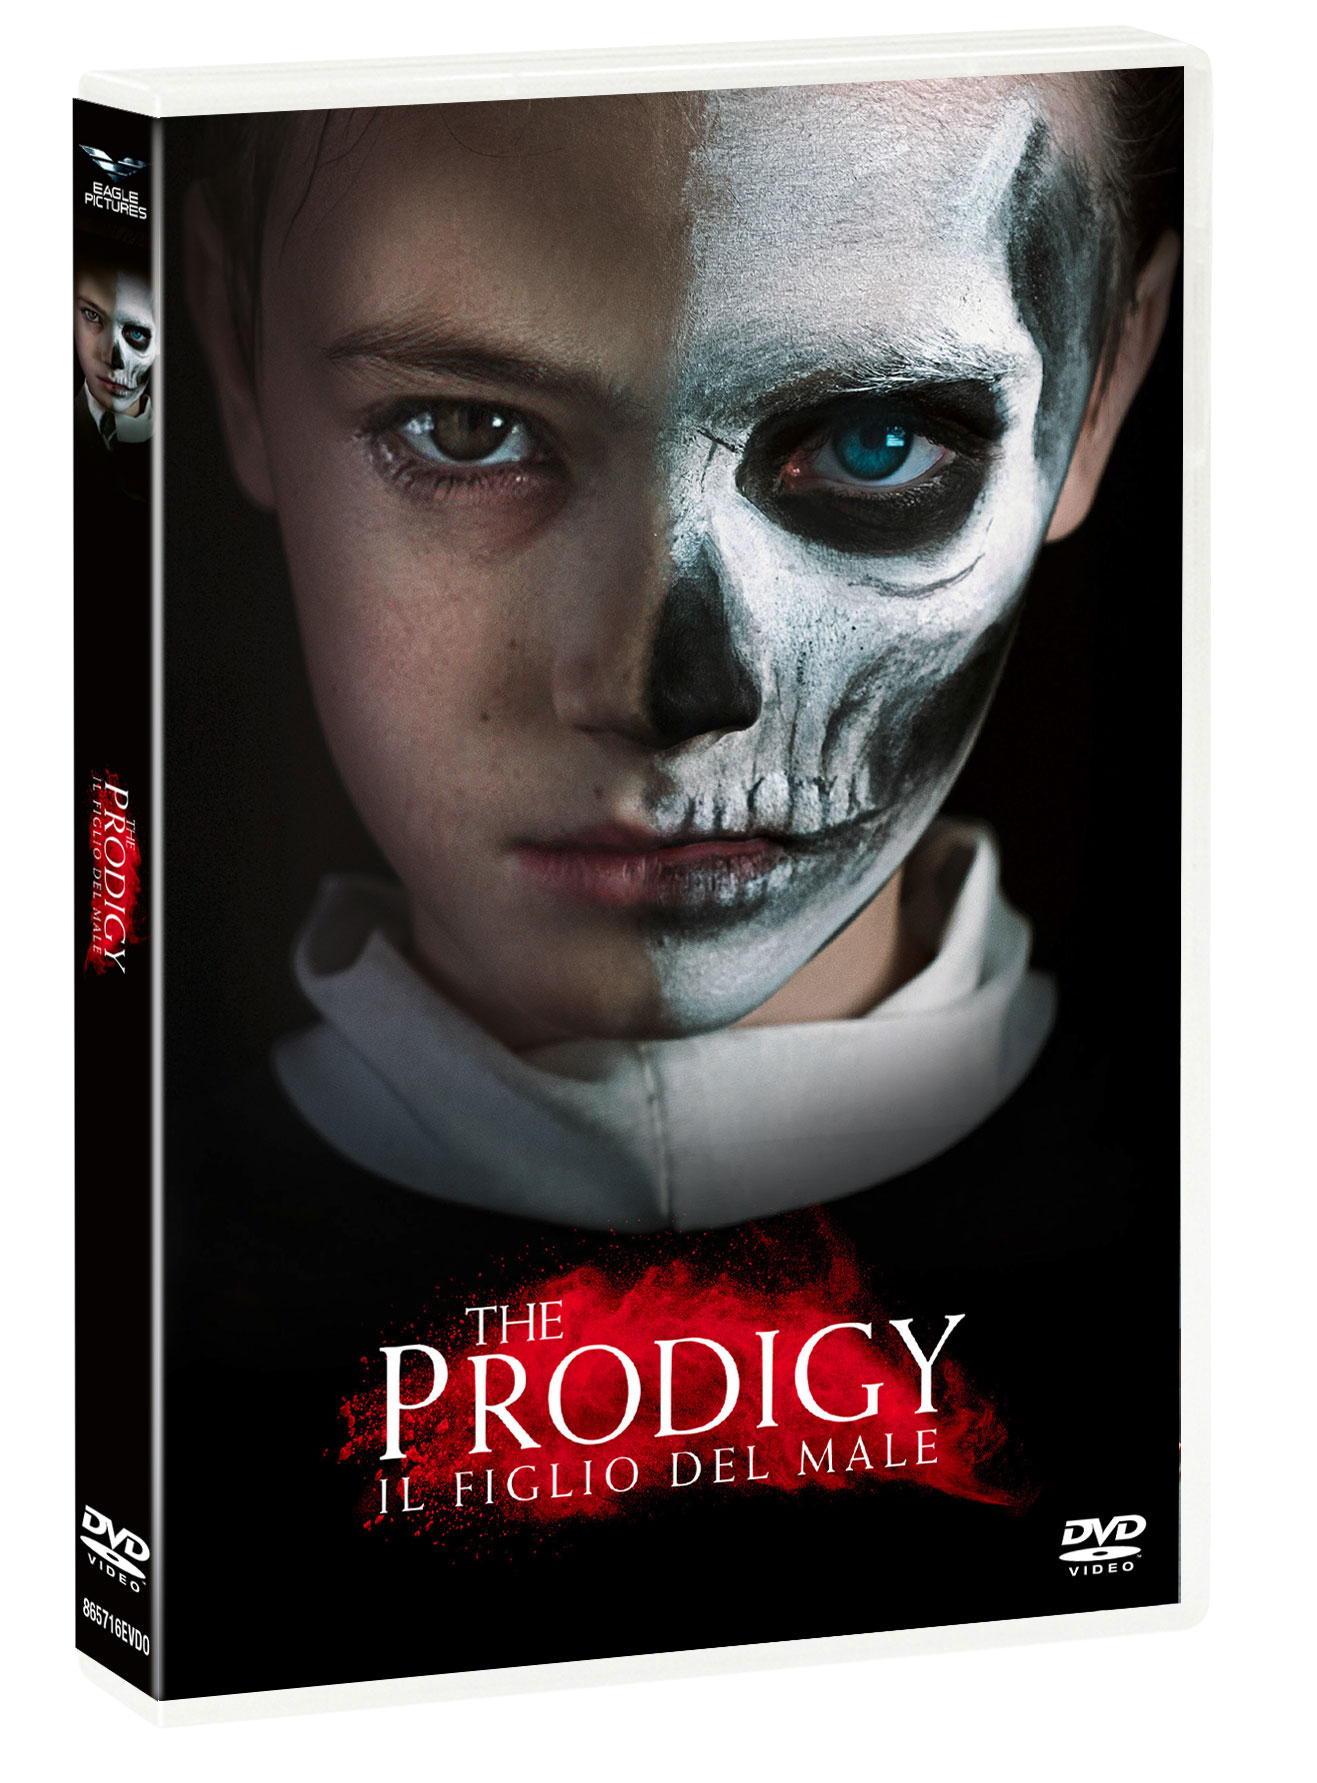 THE PRODIGY - IL FIGLIO DEL MALE (TOMBSTONE COLLECTION) (DVD)